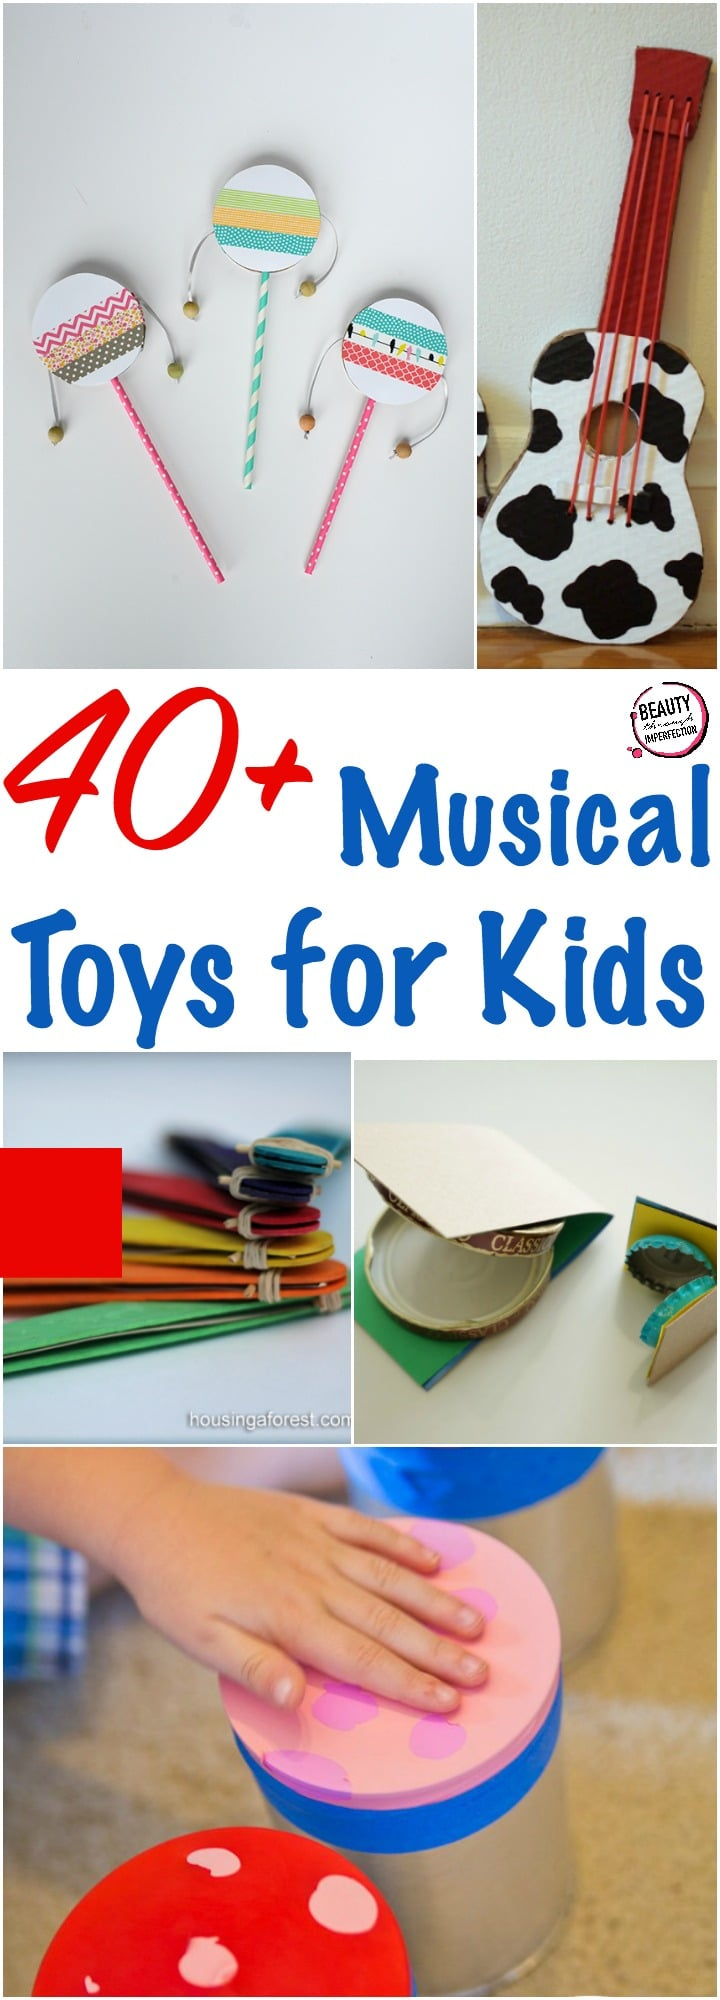 40 musical toys for kids